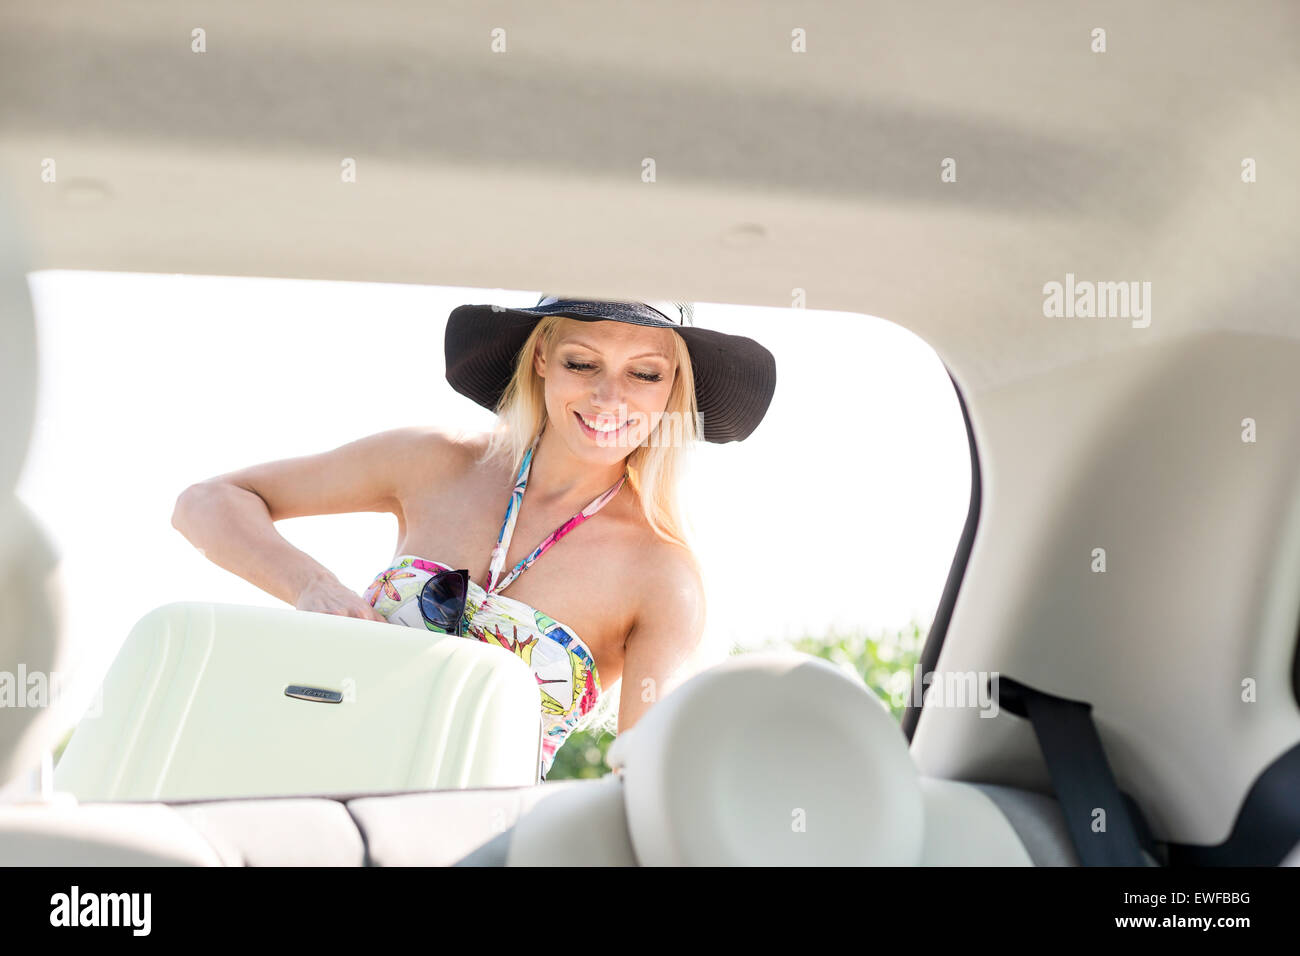 Happy woman loading suitcase in car trunk - Stock Image